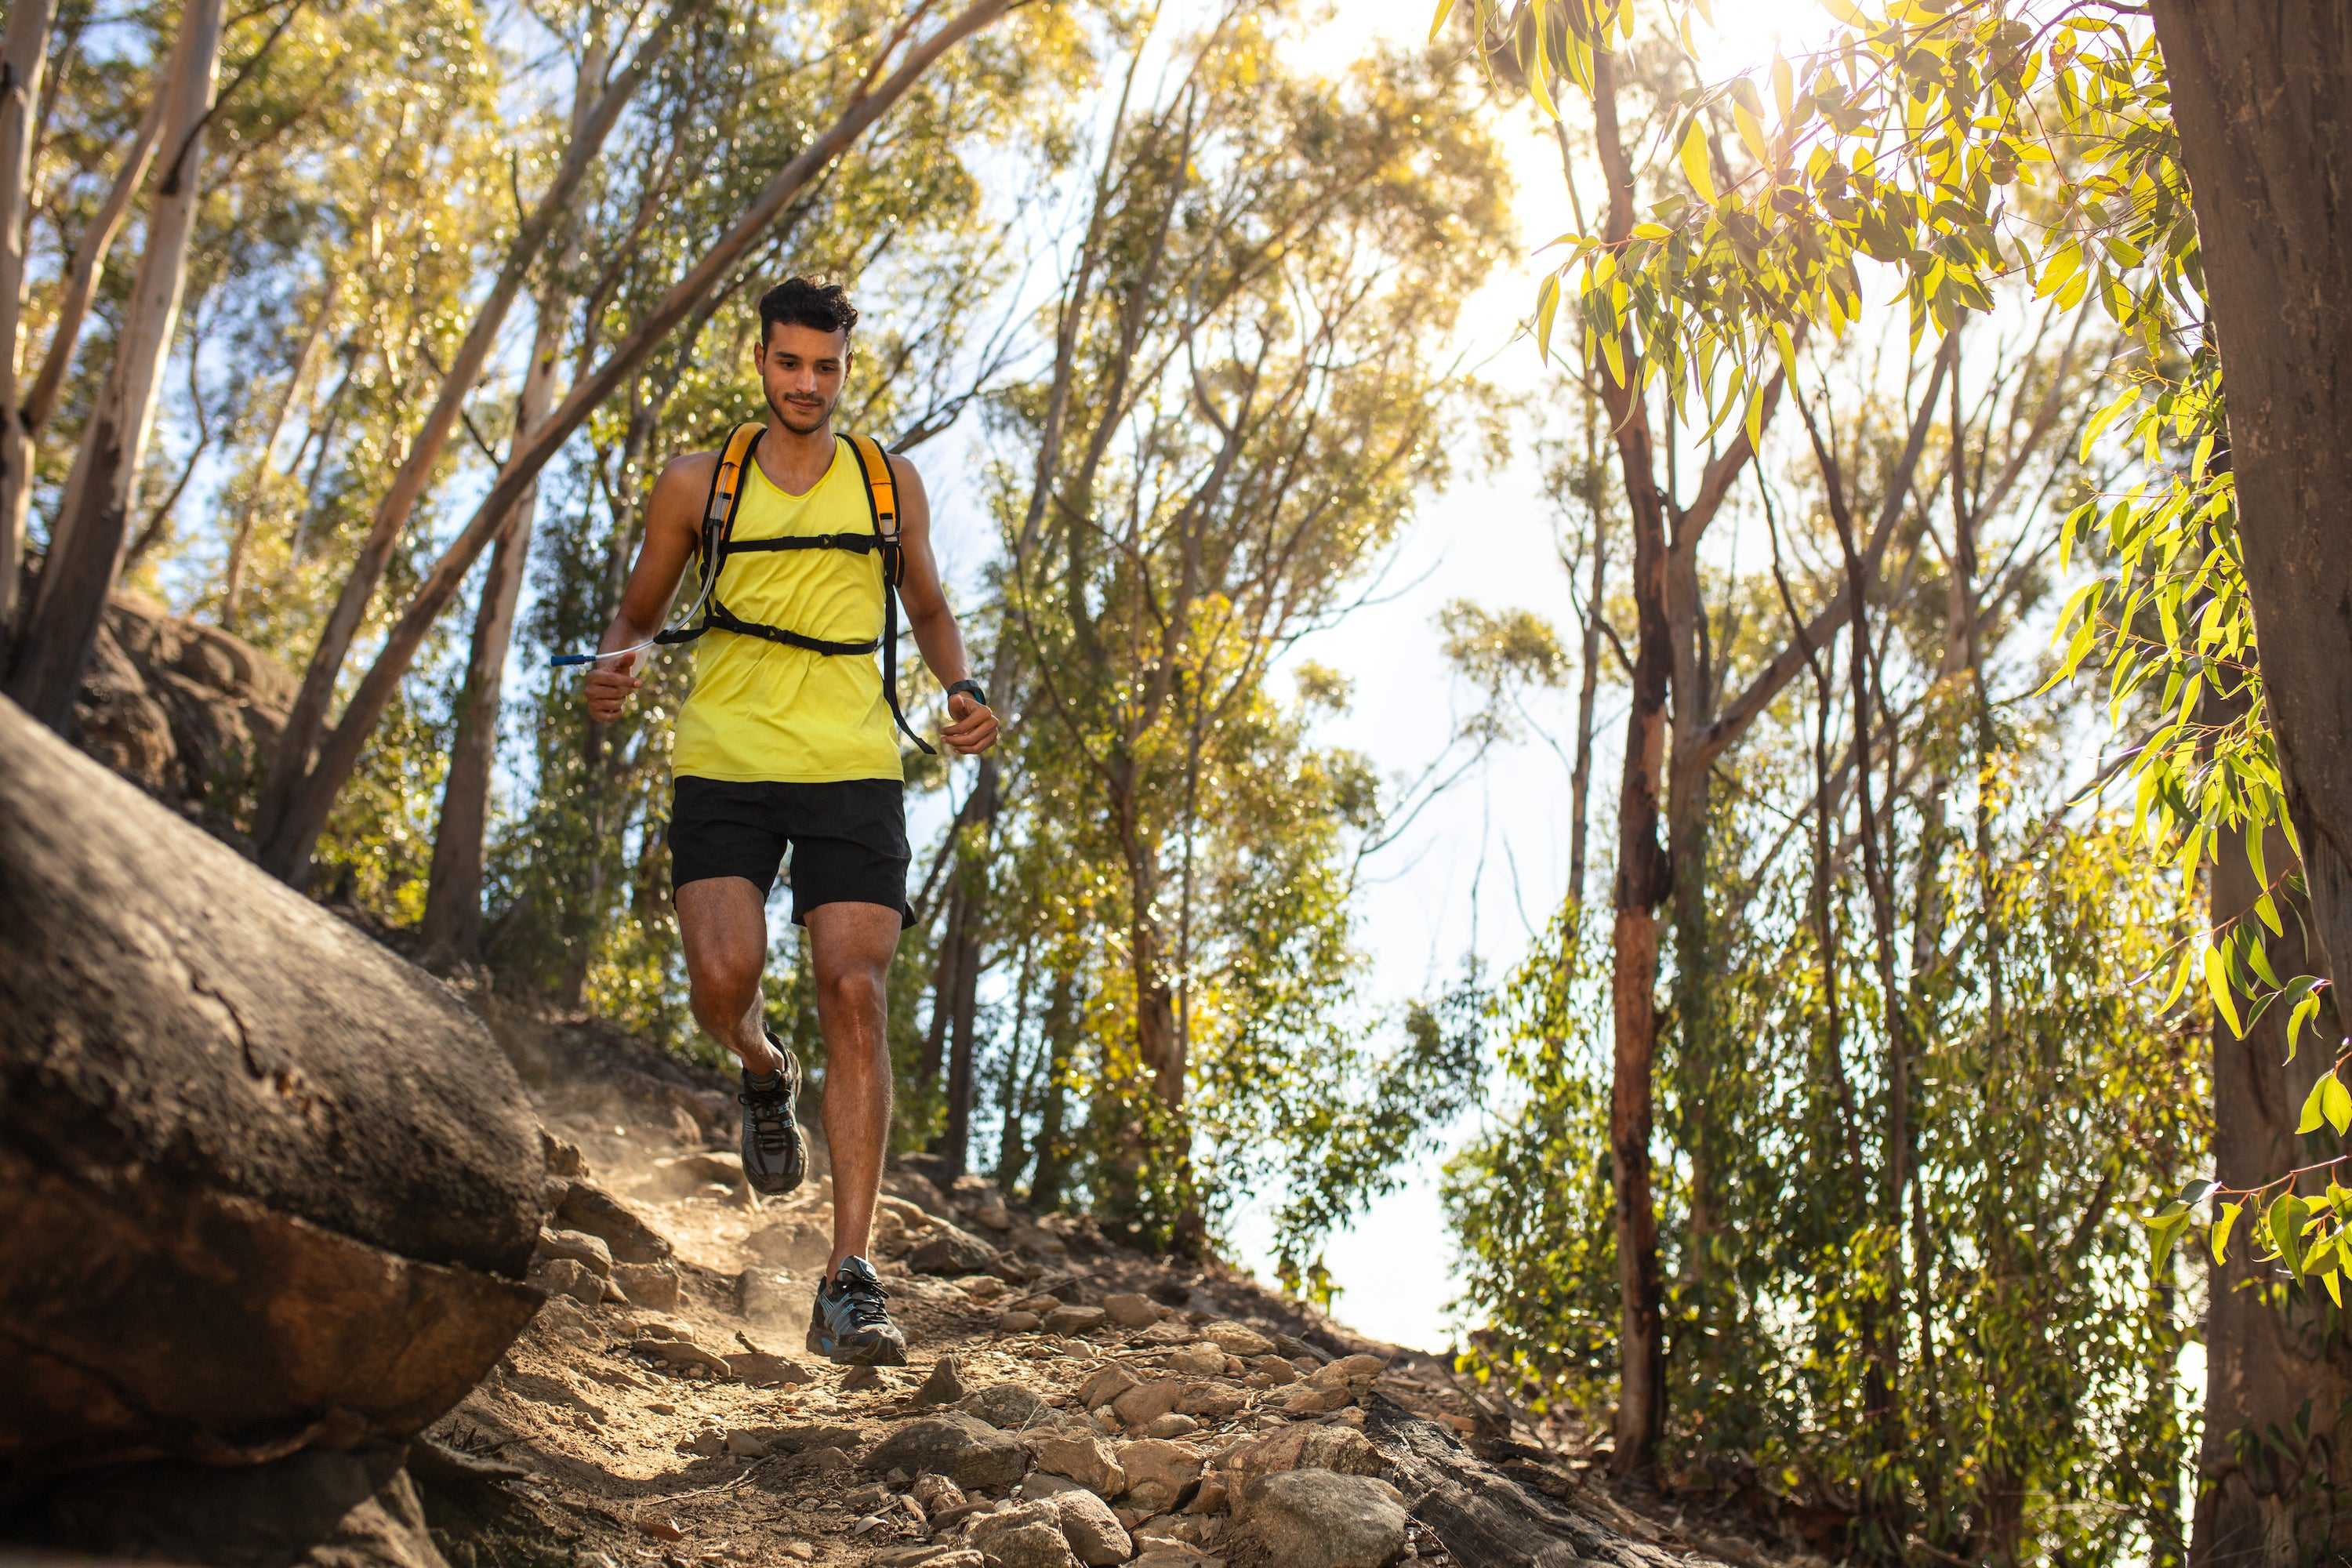 young fit man running down wooded trail with camelbak